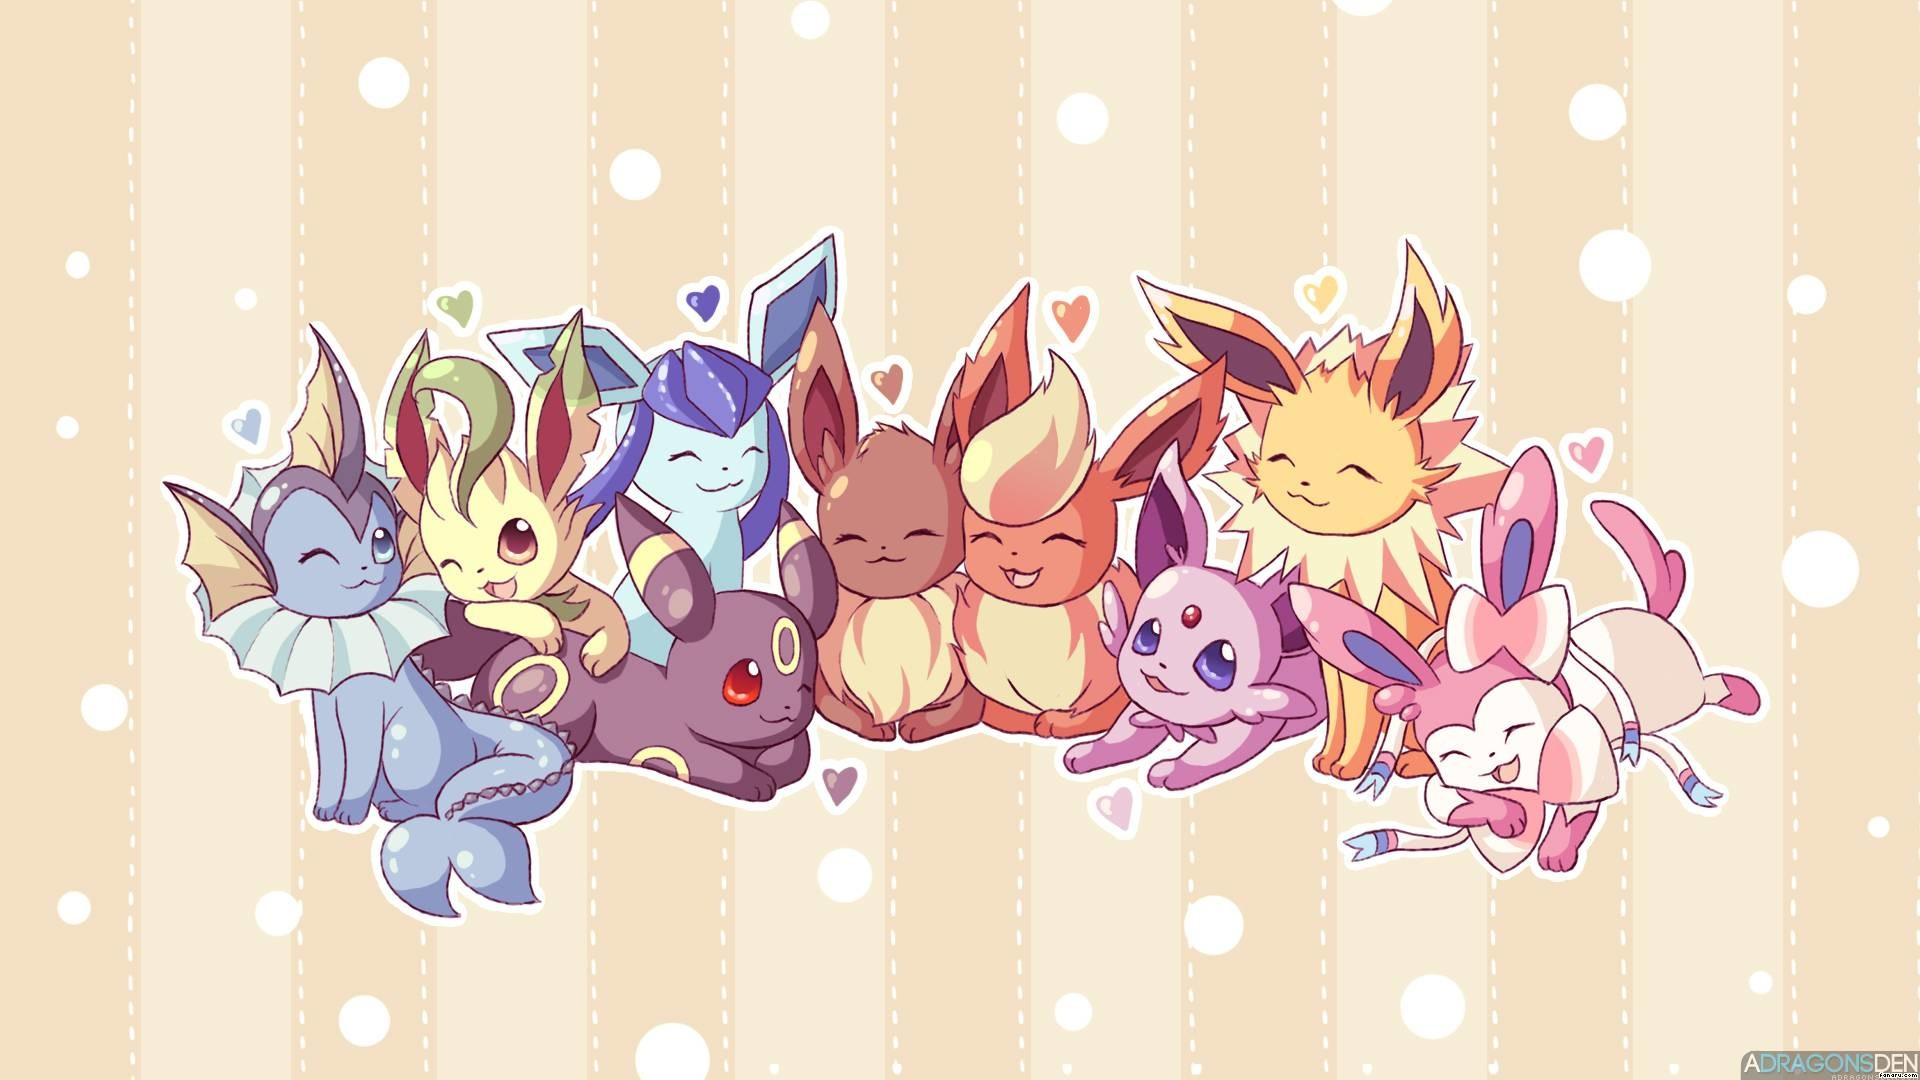 % Quality HD Pokemon Images, Wallpapers for Desktop 1920×1080 Pokemon  Pictures Wallpapers (39 Wallpapers) | Adorable Wallpapers | Wallpapers |  Pinterest …